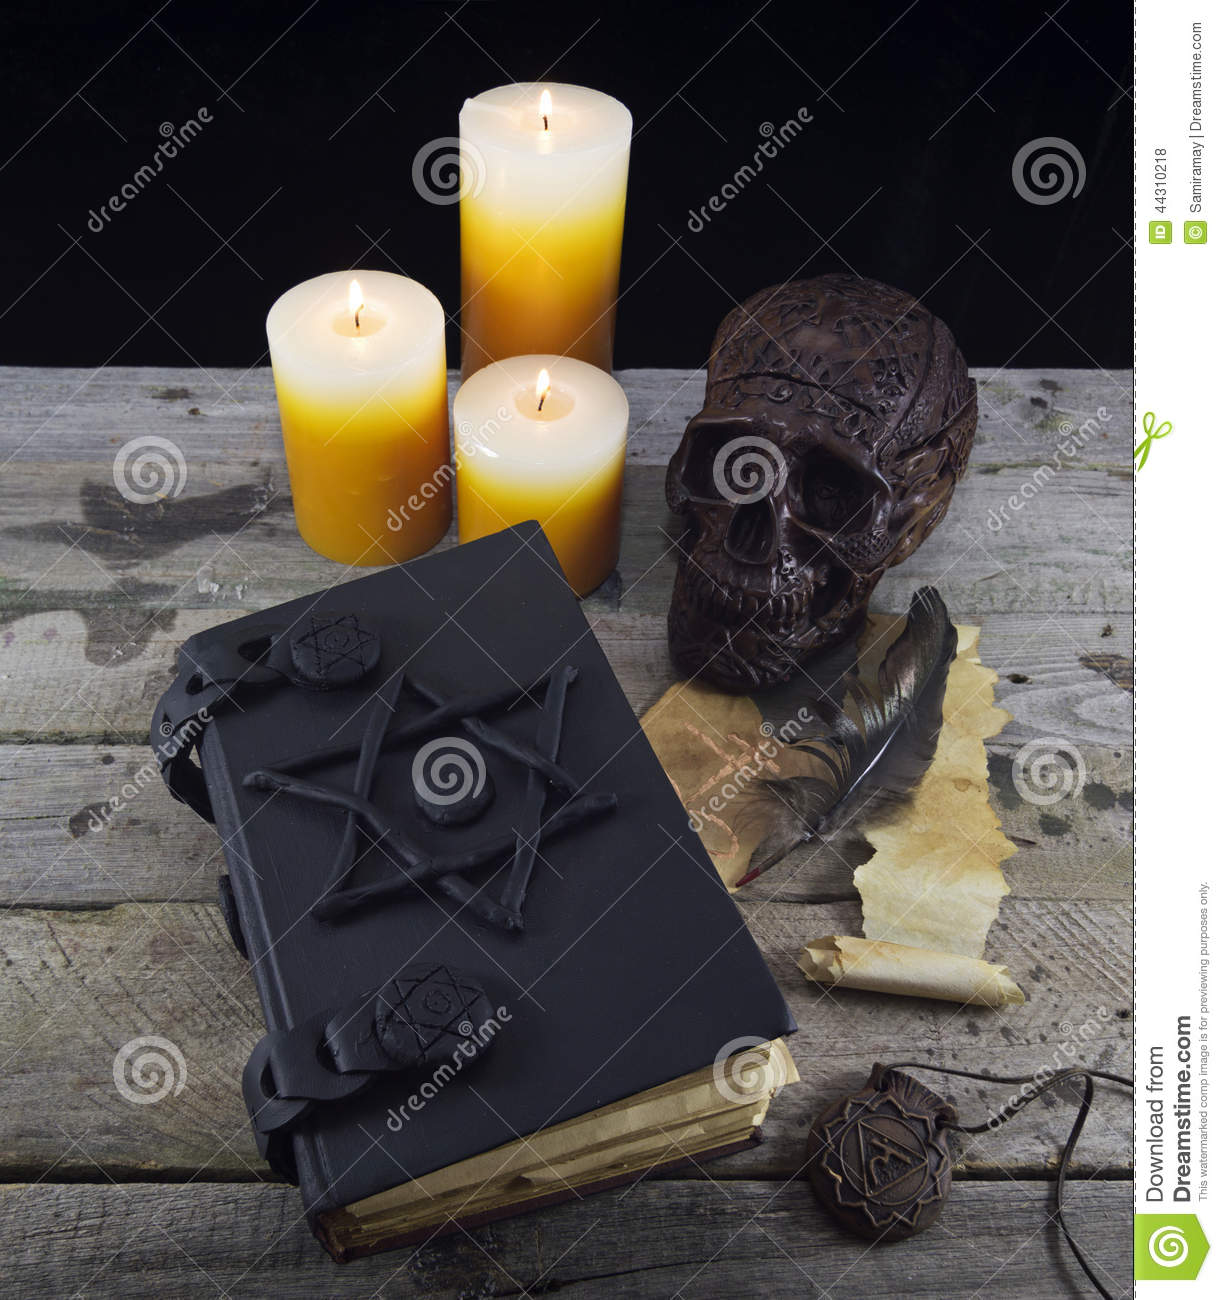 Black Magic Book With Mystic Objects Stock Photo Image